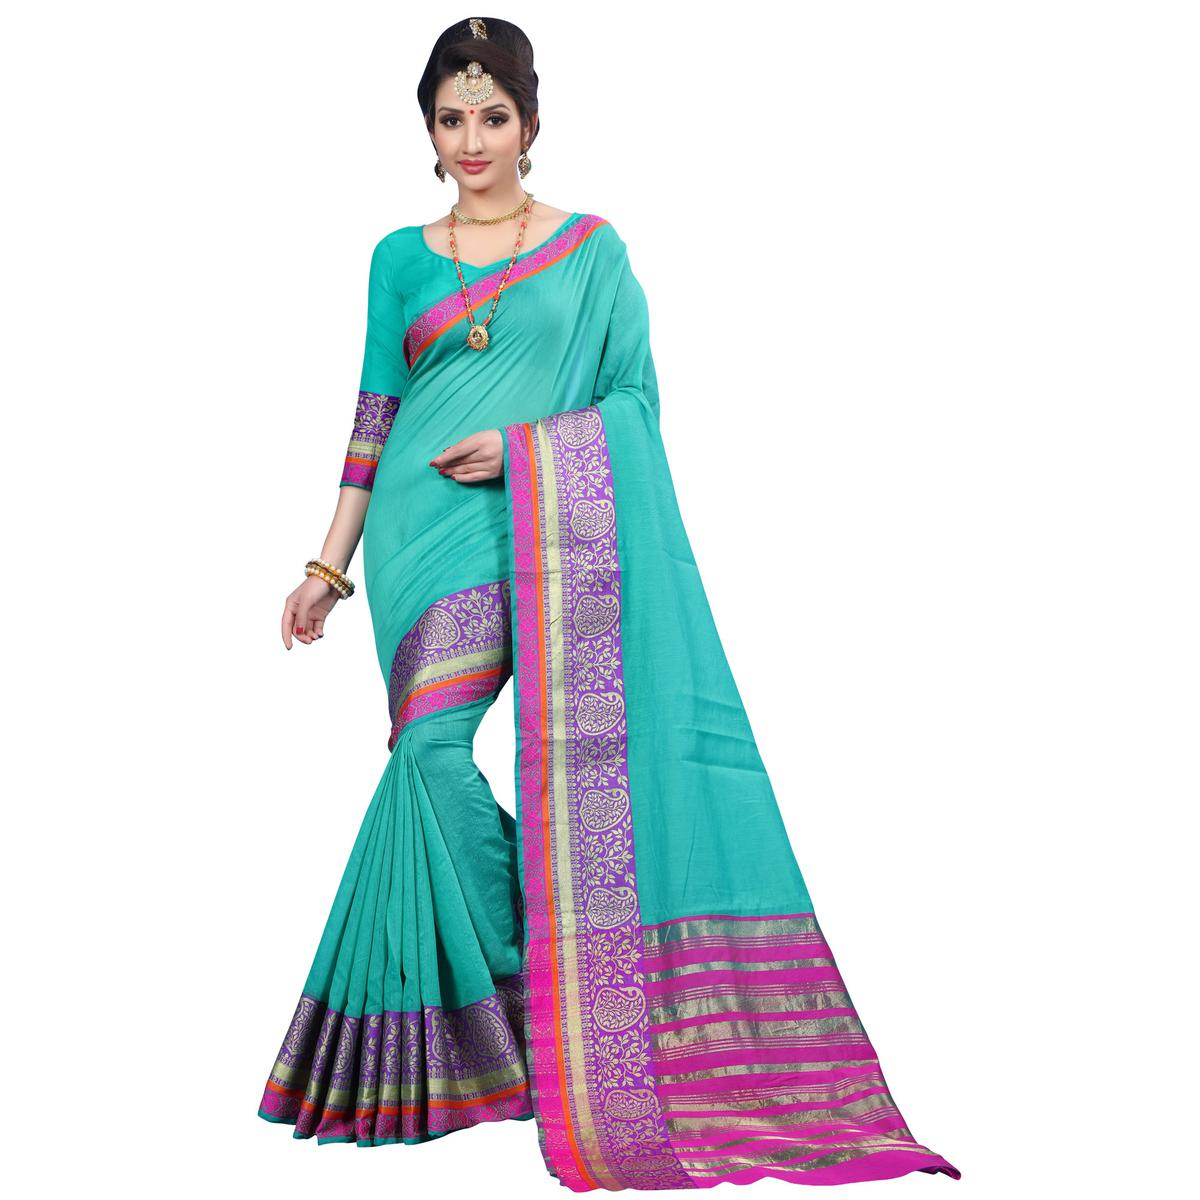 Blooming Turquoise Green Colored Festive Wear Woven Cotton Saree